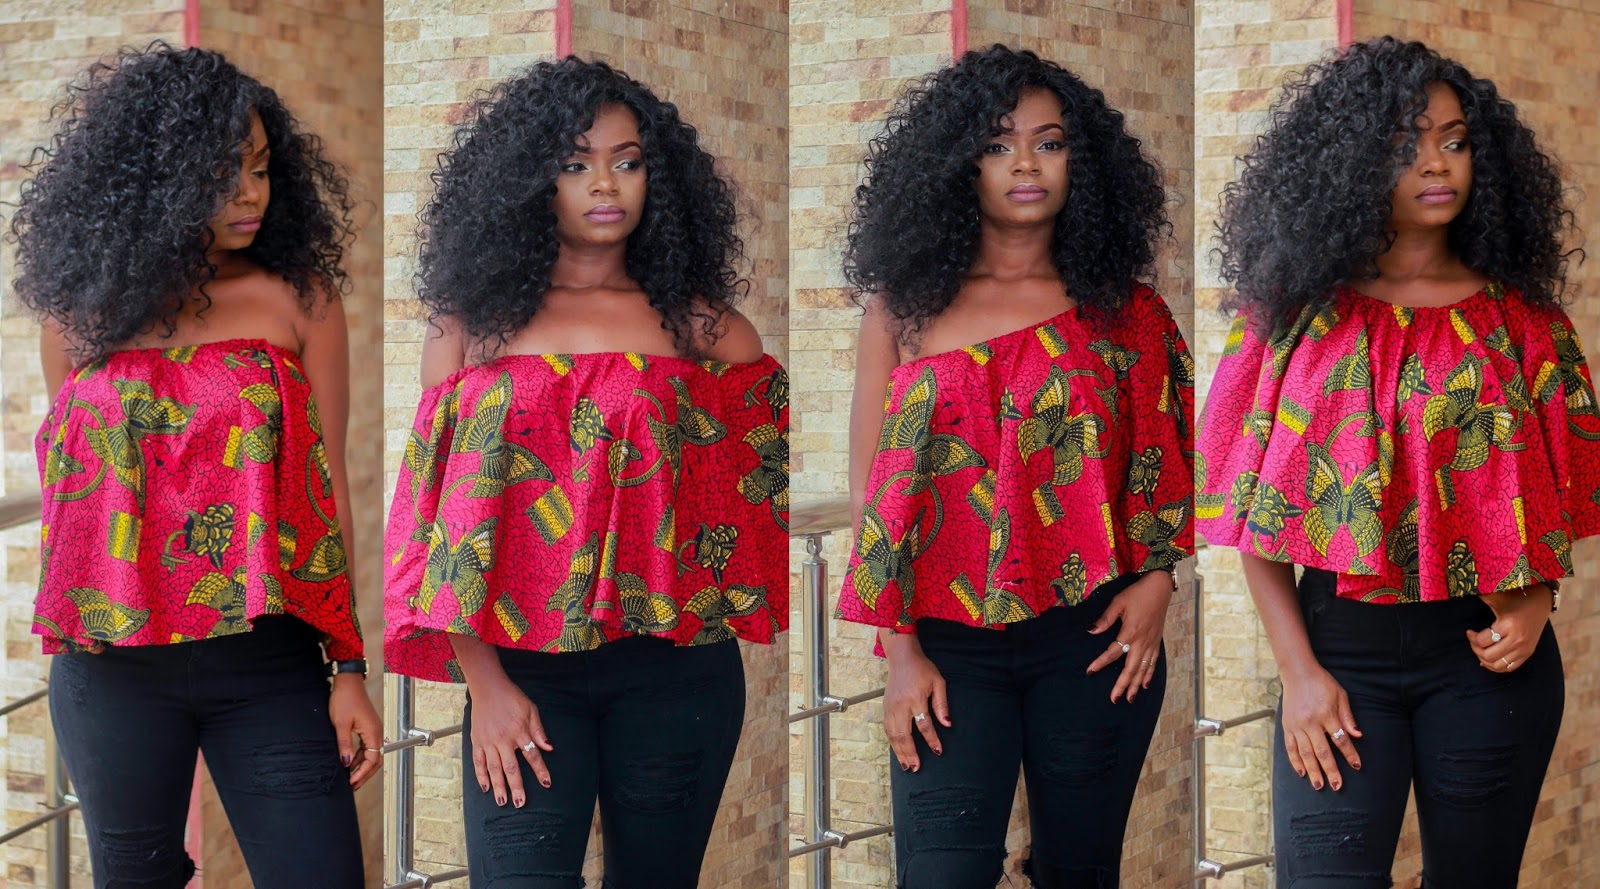 COLD SHOULDER - ANKARA - Ankara cold shoulder Top worn 4 different ways